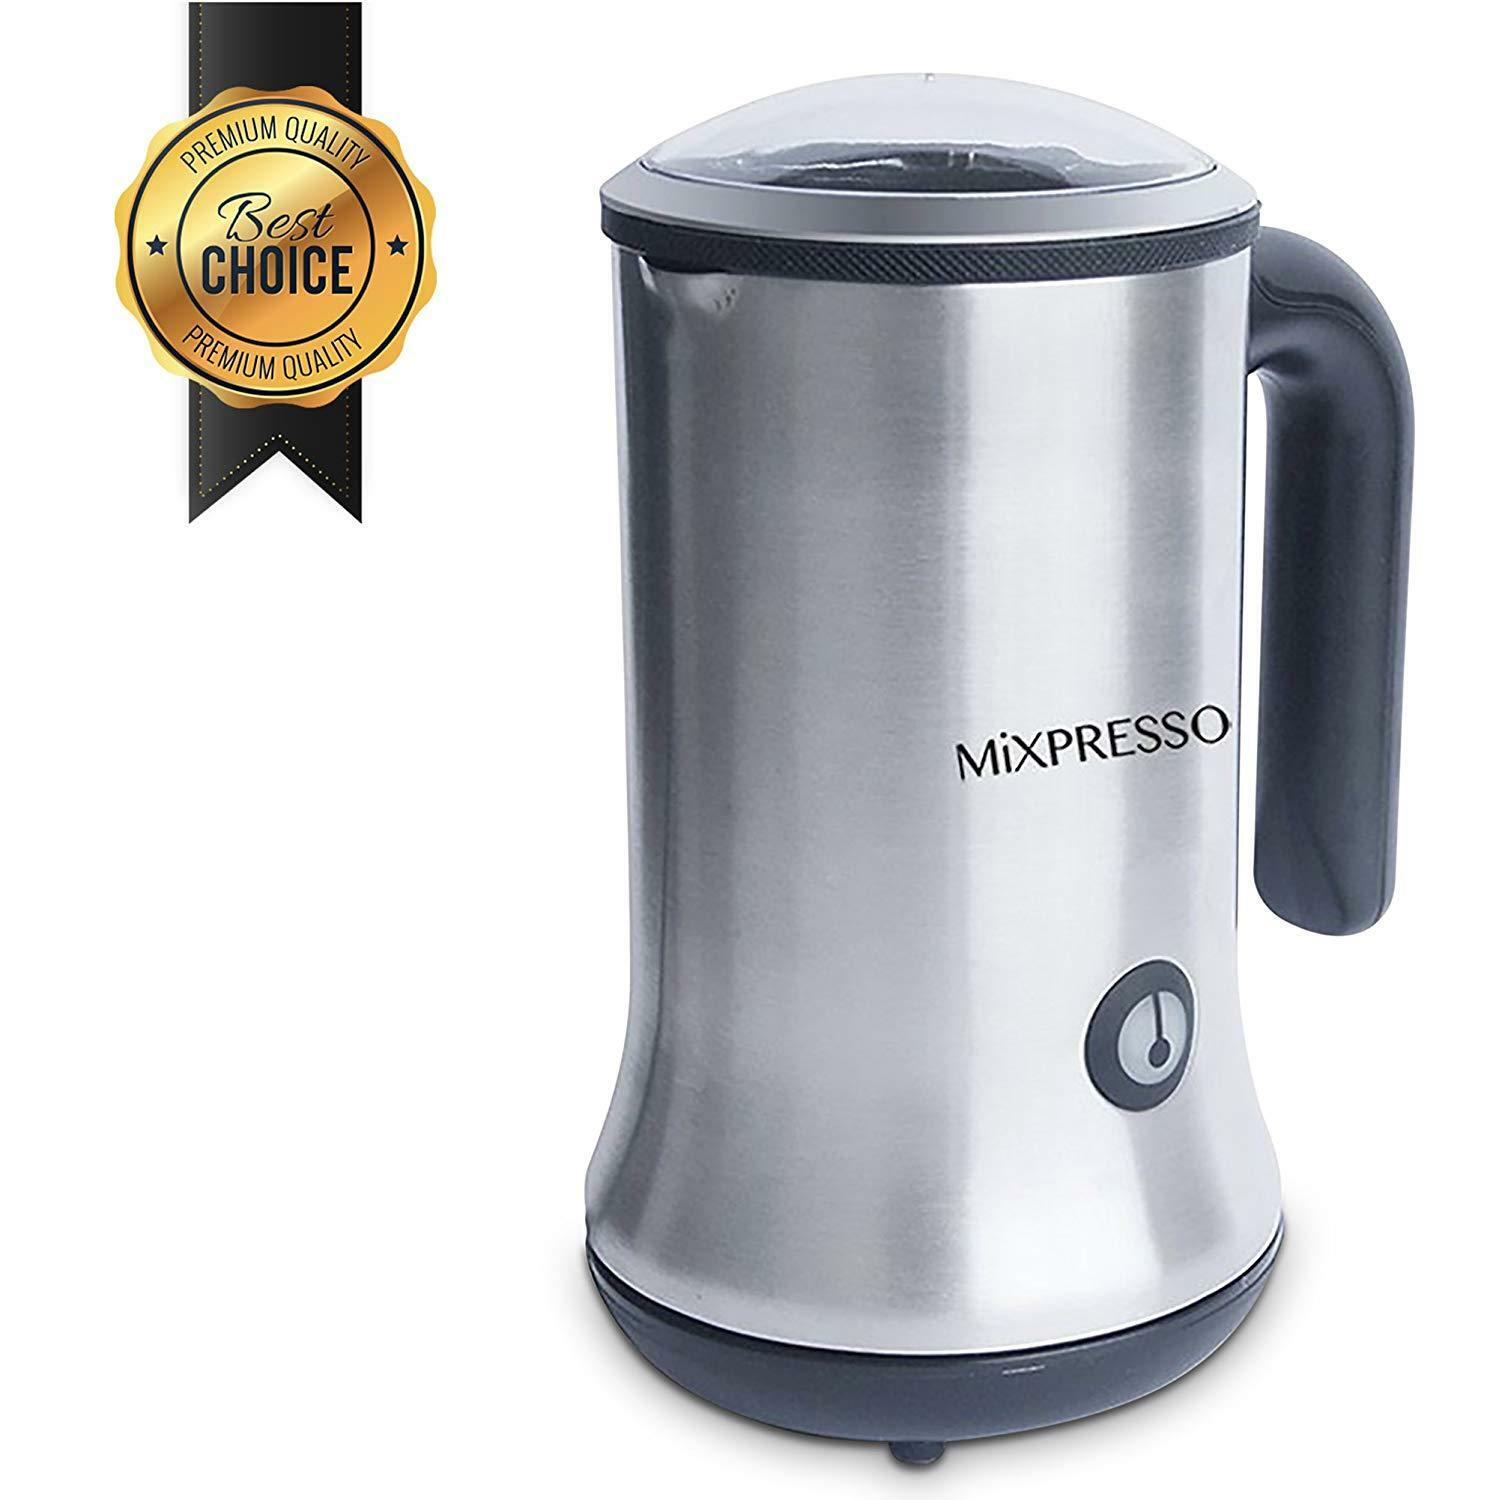 Mixpresso Stainless Steel Electric Milk Frother and heater w